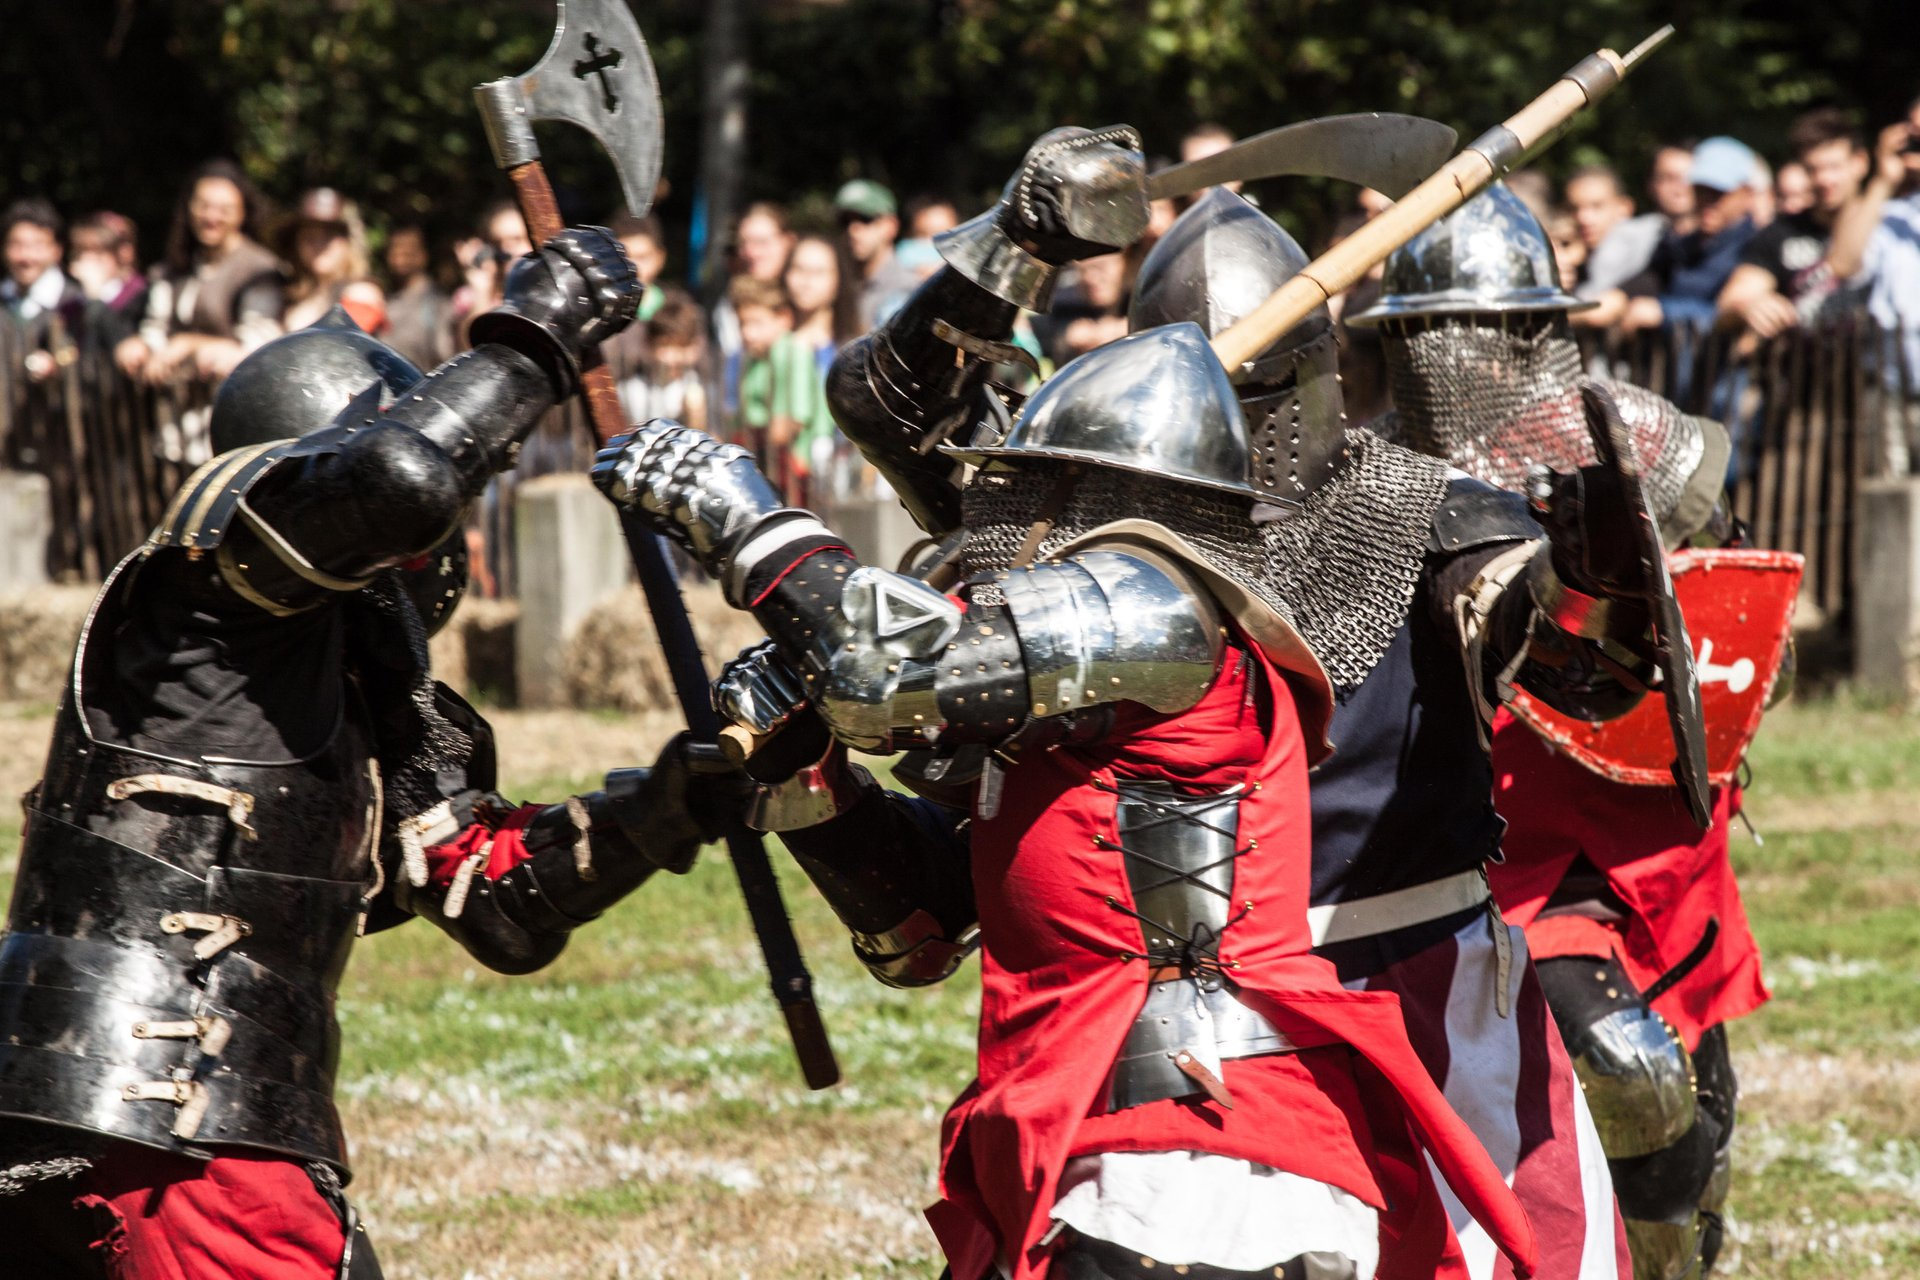 Medieval Festival at Fort Tryon Park in New York 2019 - Best Time